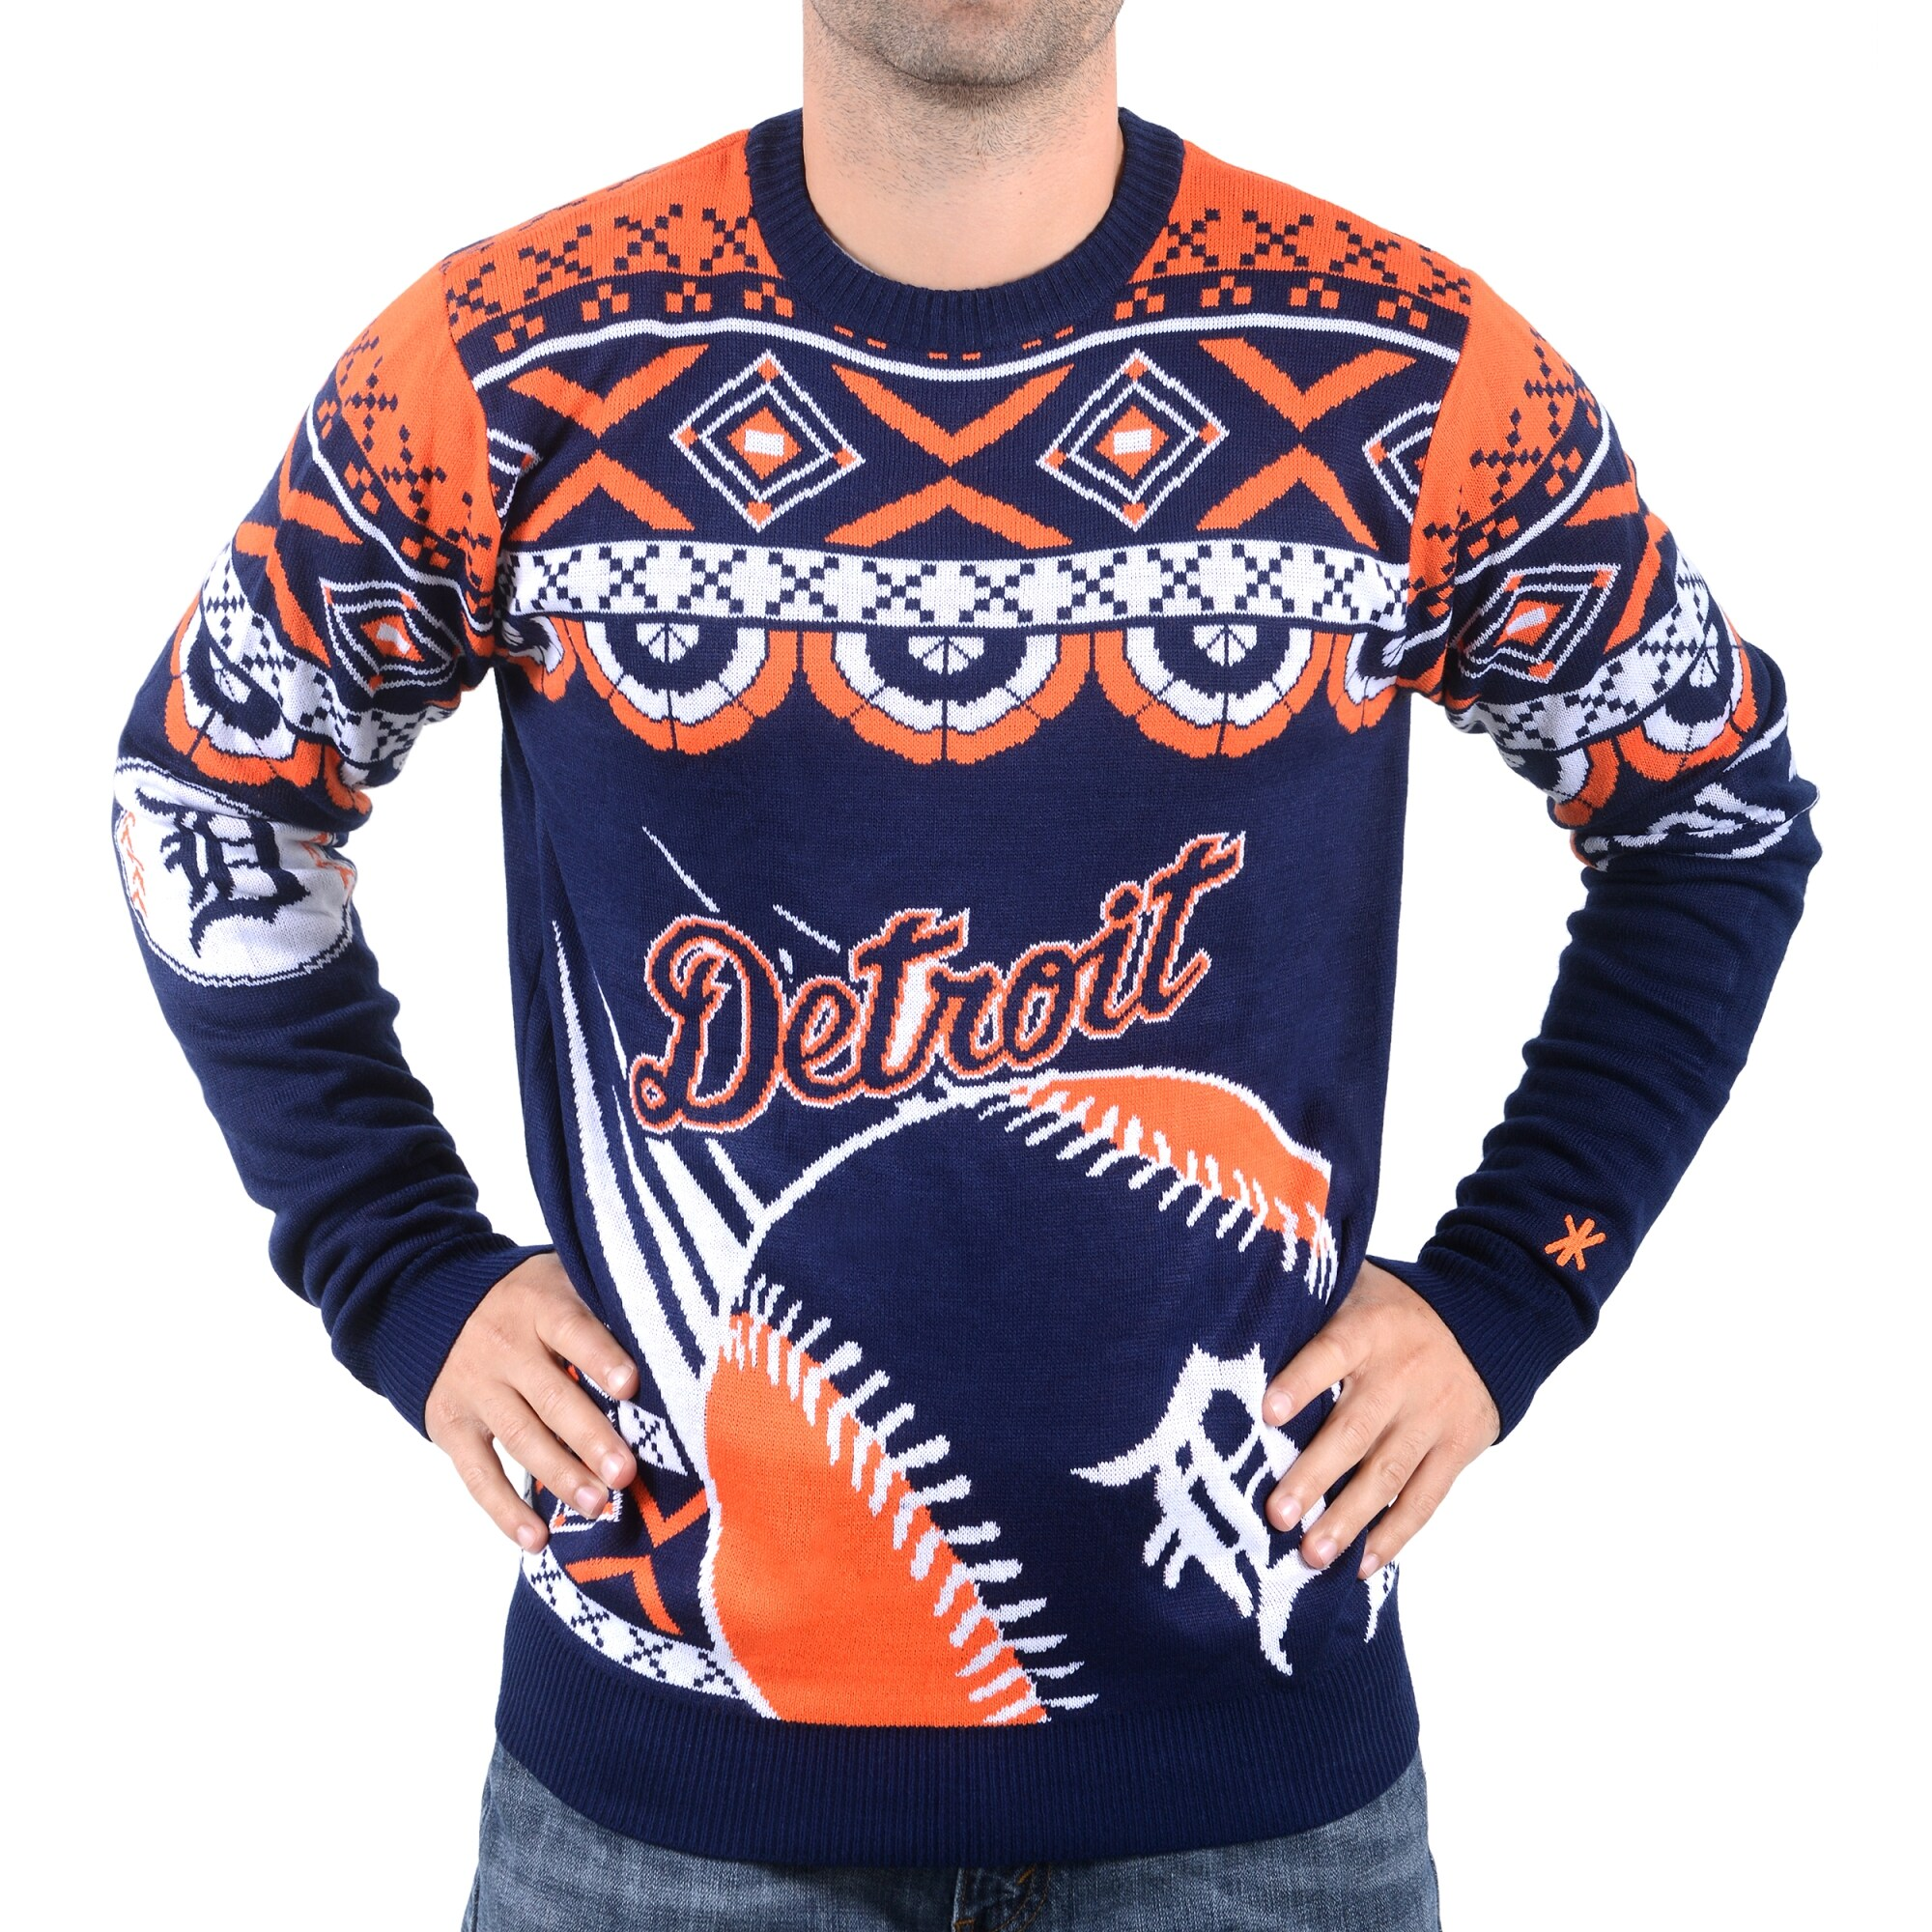 Detroit Tigers Klew Thematic Ugly Sweater - Navy Blue